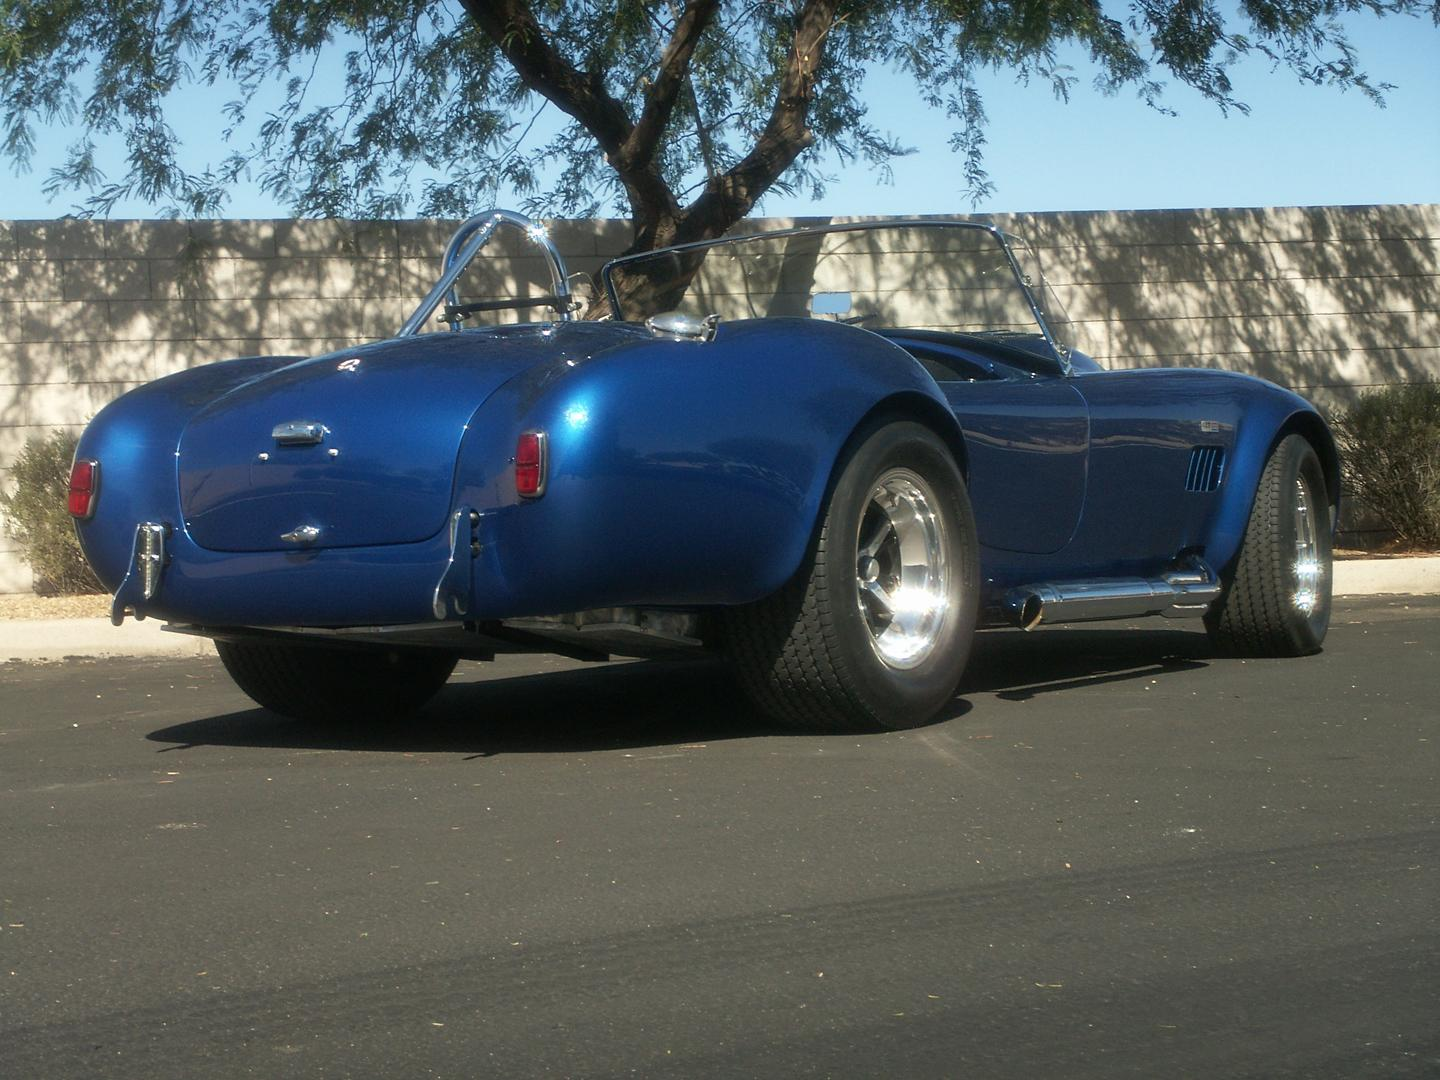 1967 Shelby Cobra 427 Super Snake Review - Top Speed